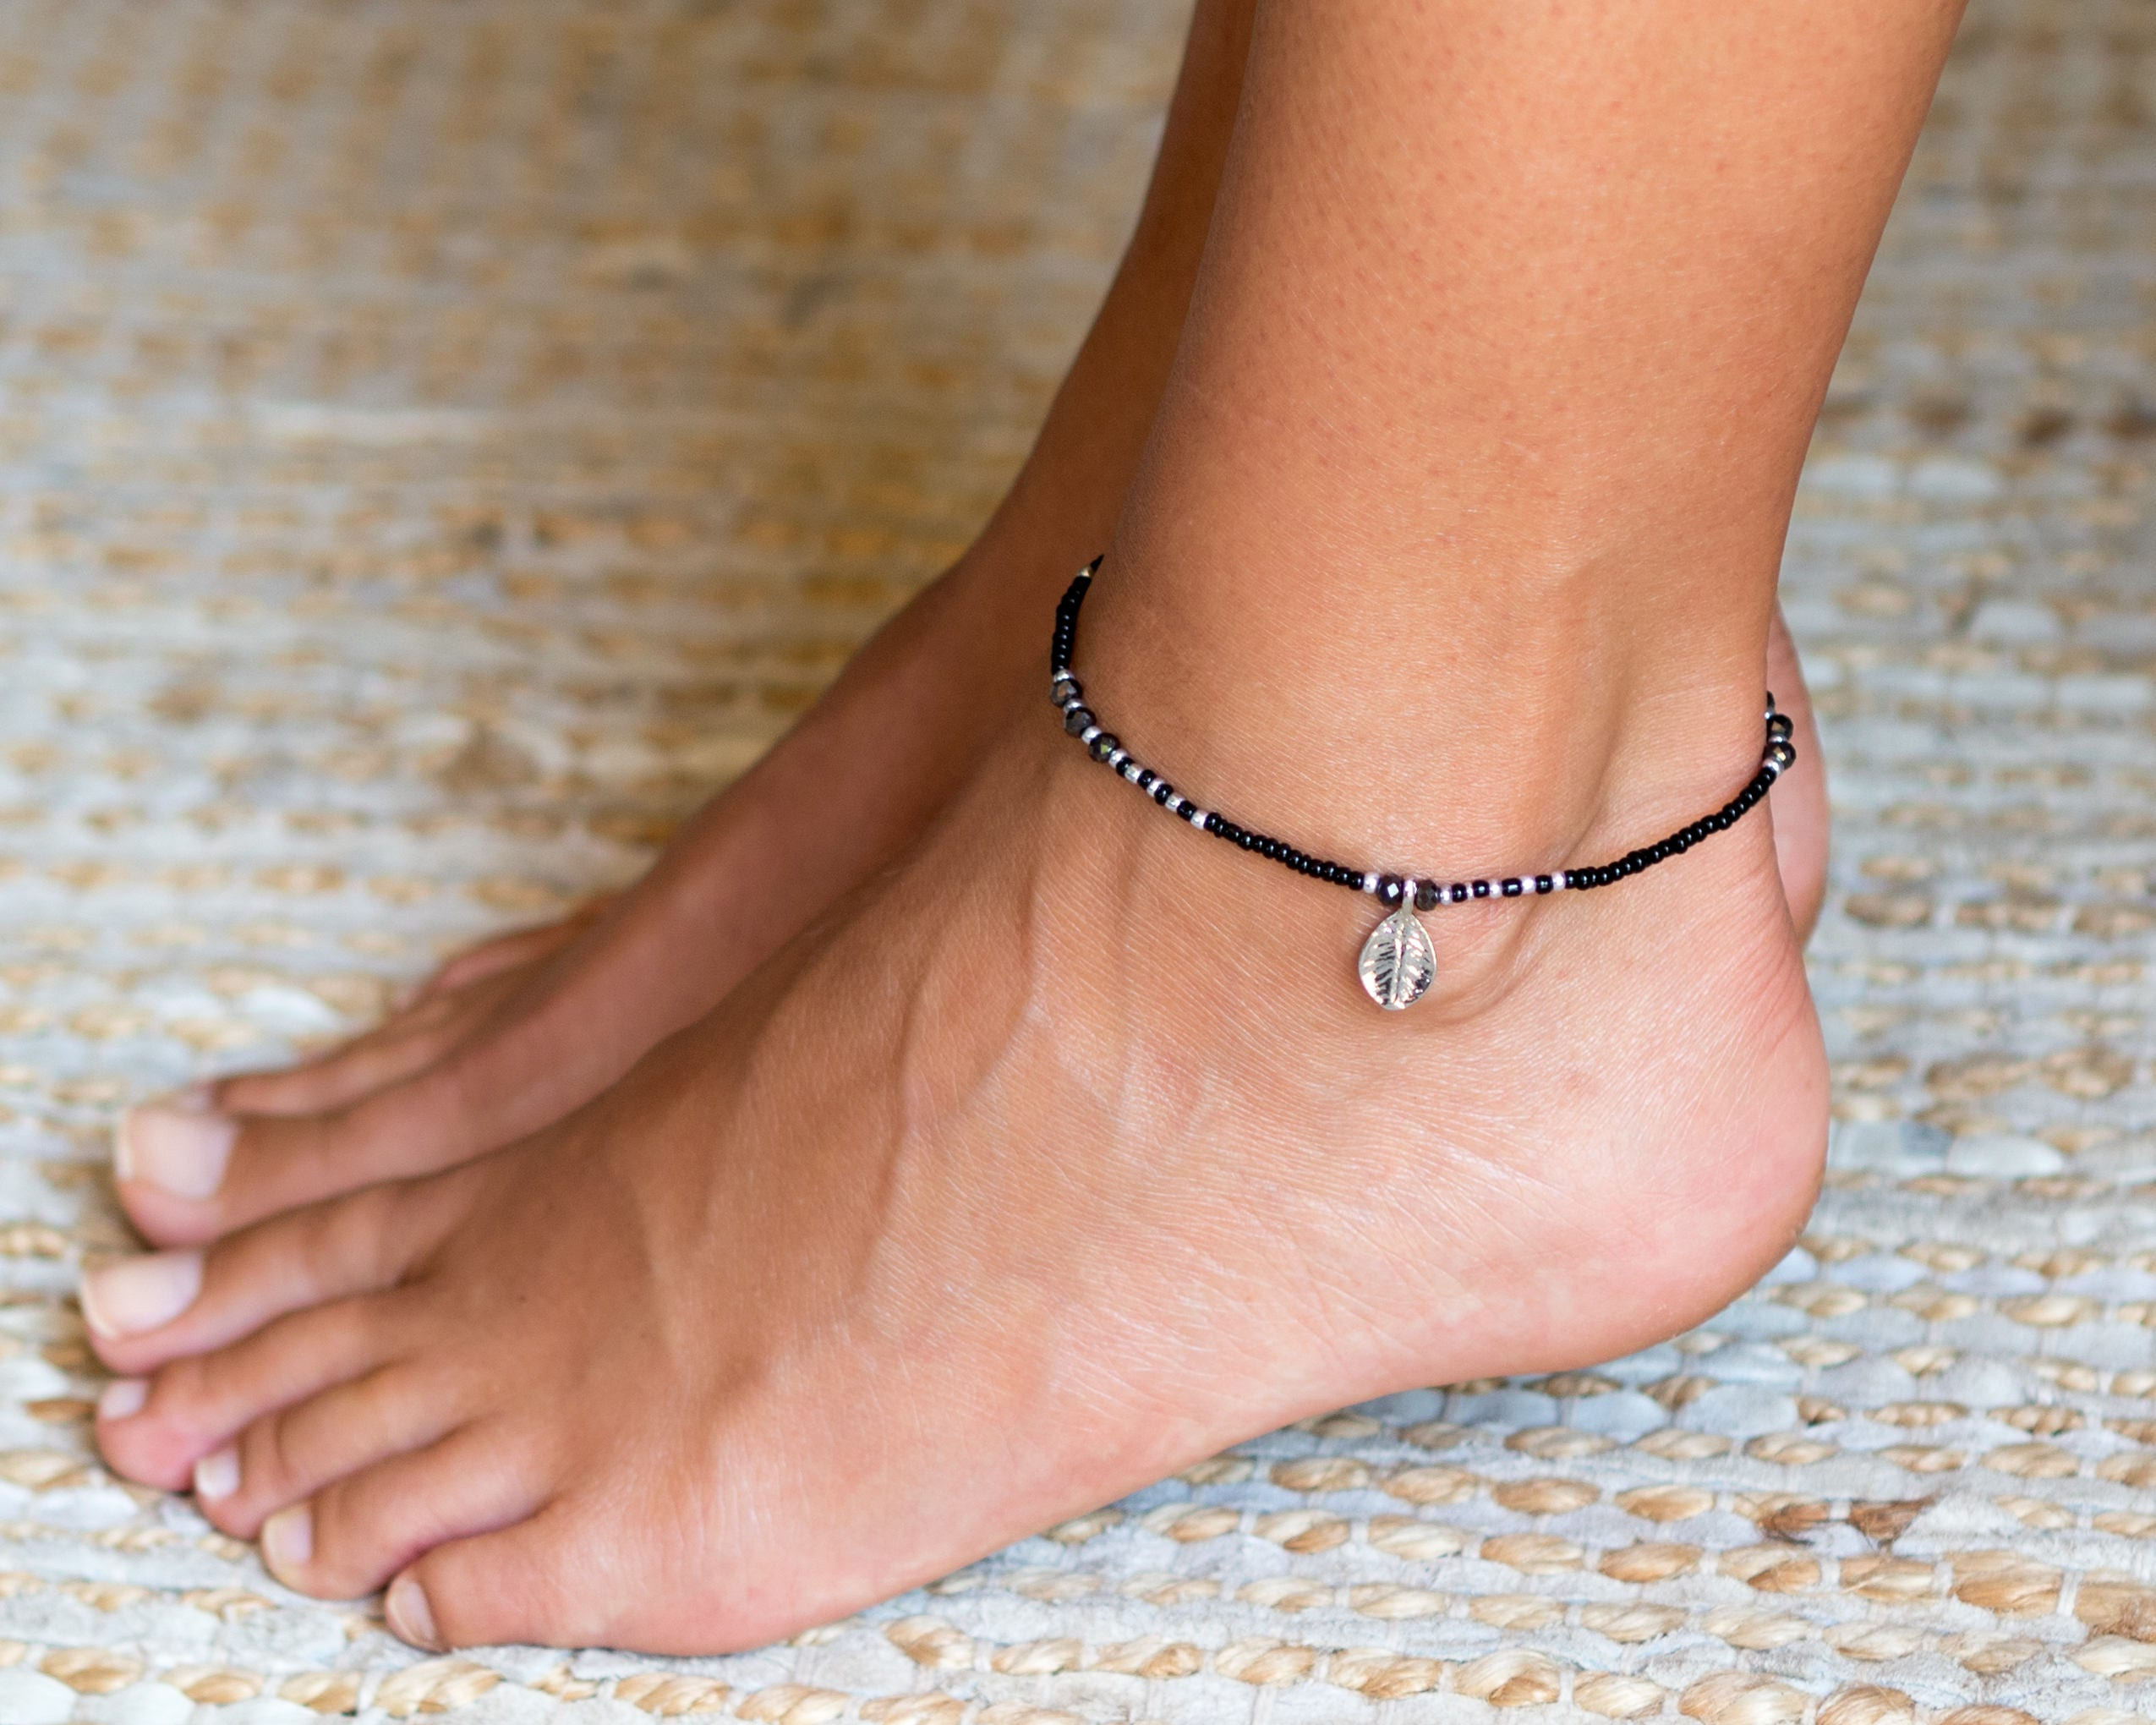 new buy bracelets womens pin bracelet i gold jewelry fancy anklet plated where ankle can dangle